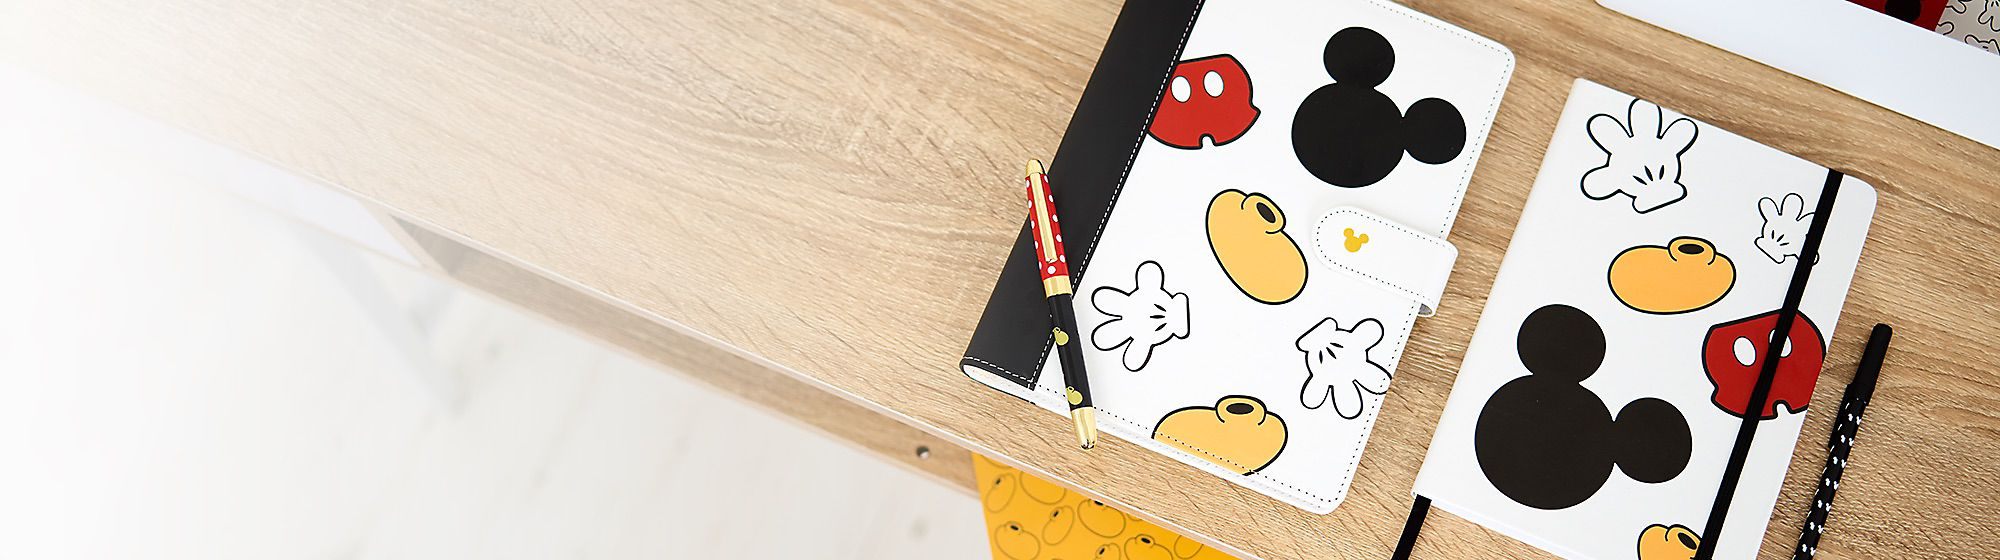 Oh Boy! Embark on creative adventures with our stationery selection. SHOP NOW